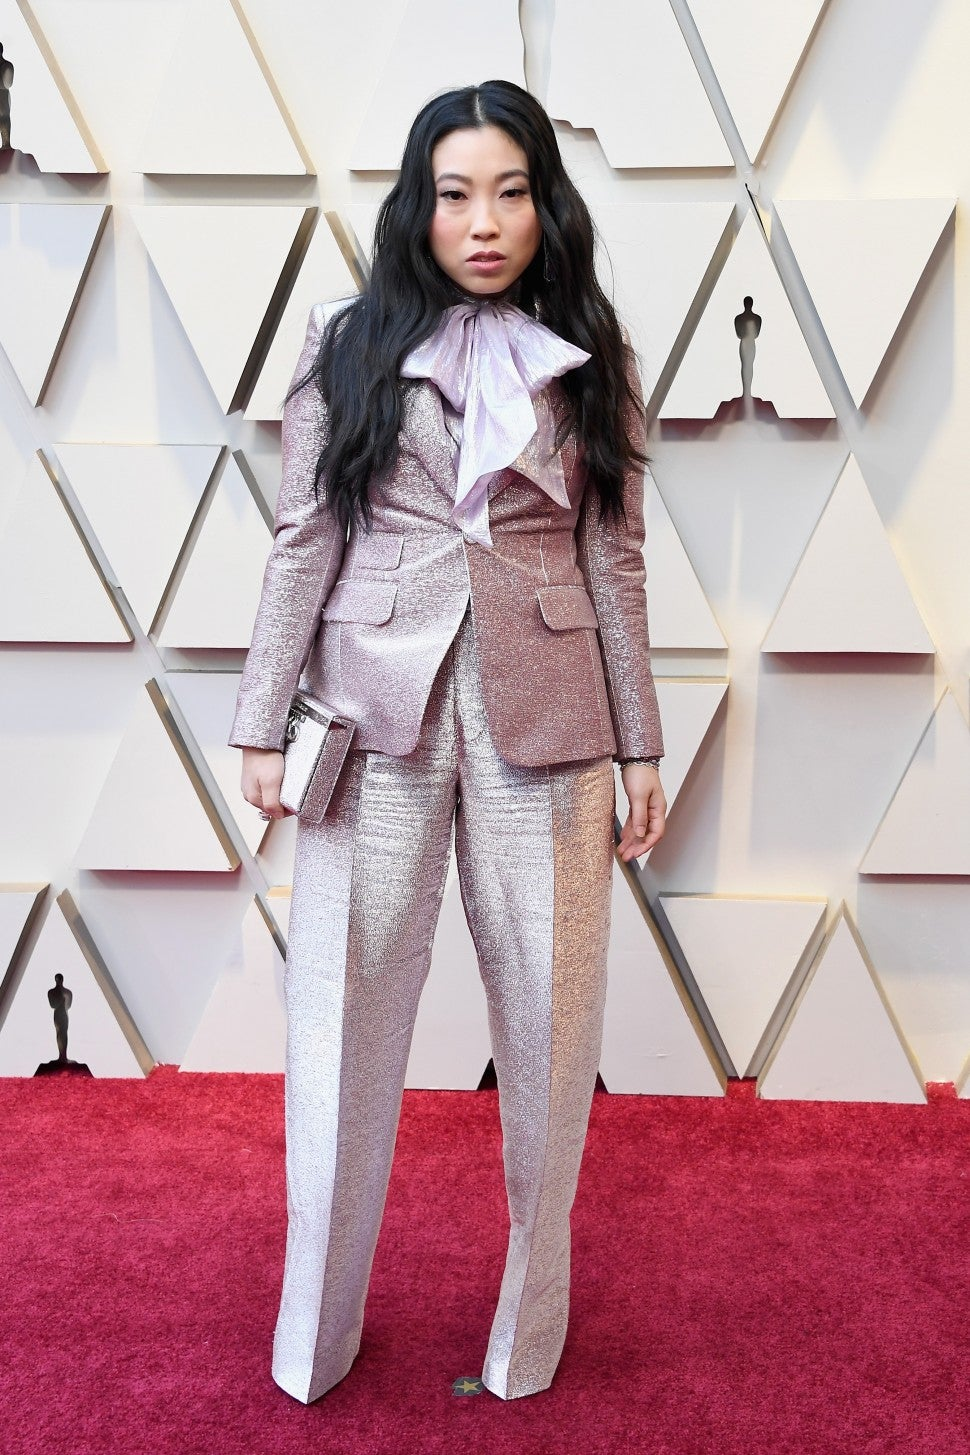 Awkwafina at the 91st Annual Academy Awards